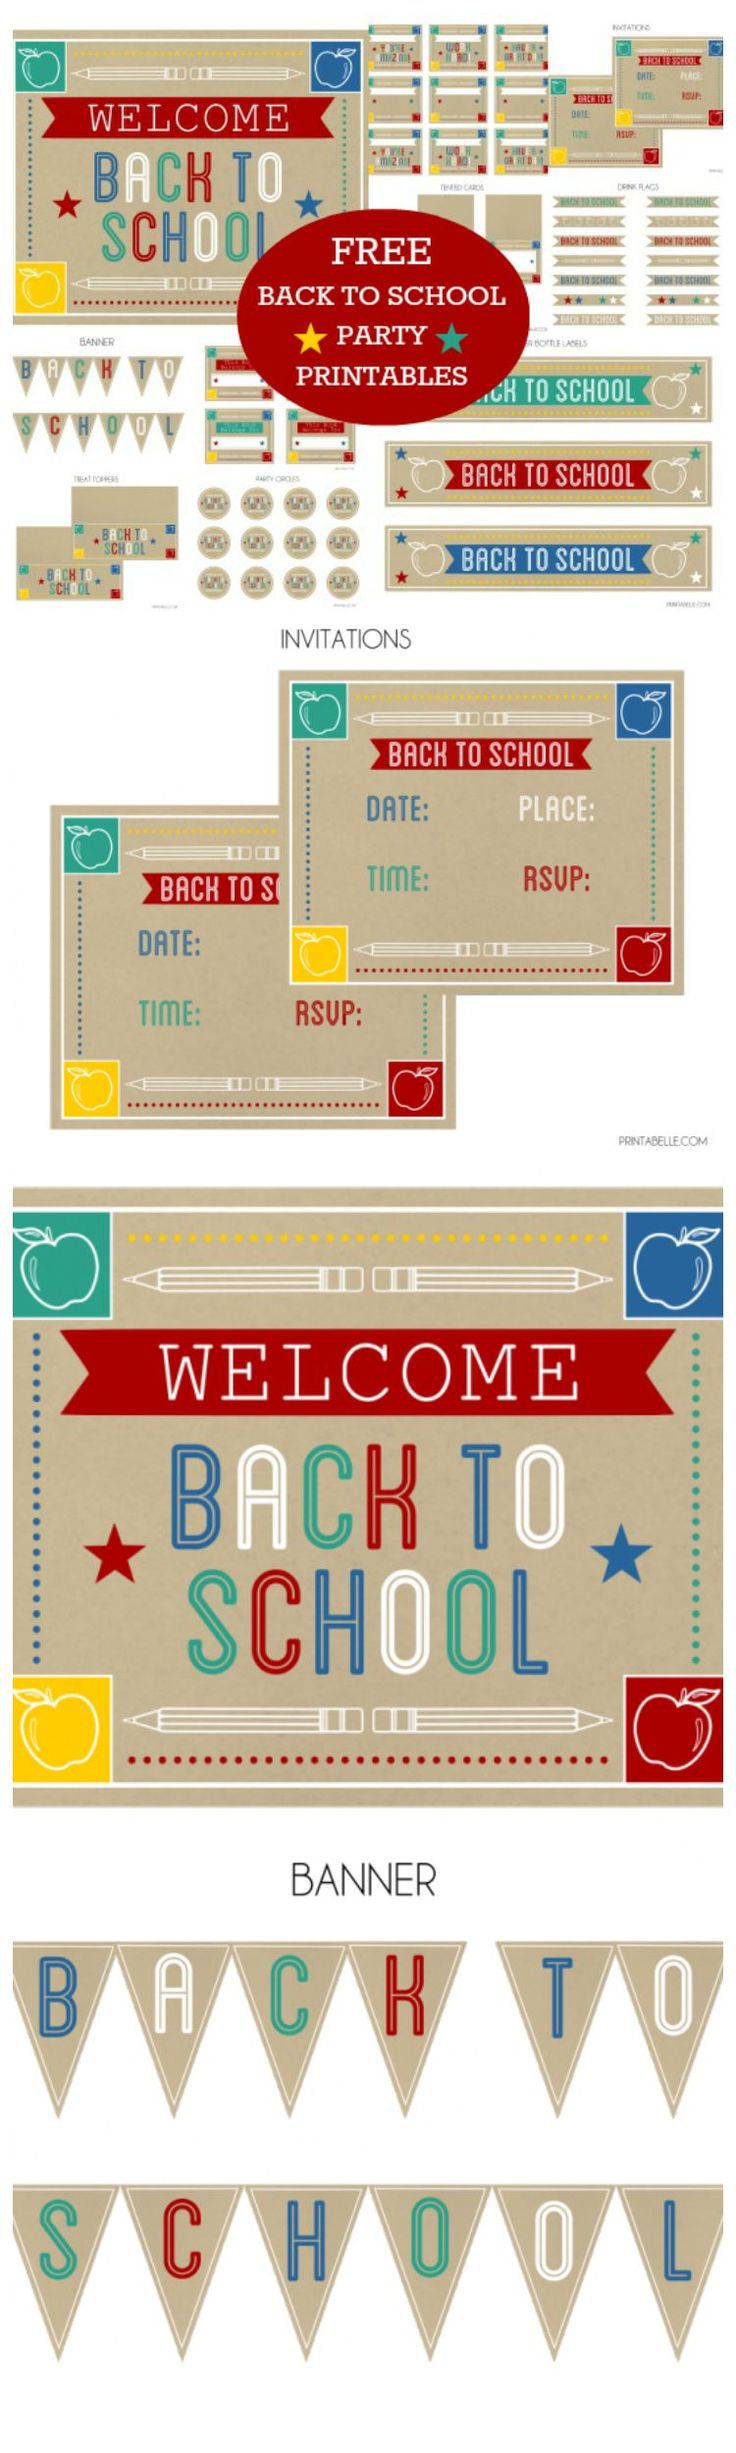 """These are the perfect free printables for throwing a back-to-school party. There are invitations, cupcake toppers, water bottle labels, a """"back to school"""" banner, welcome sign, lunch notes, and so much more! See more back-to-school party ideas at CatchMyParty.com."""